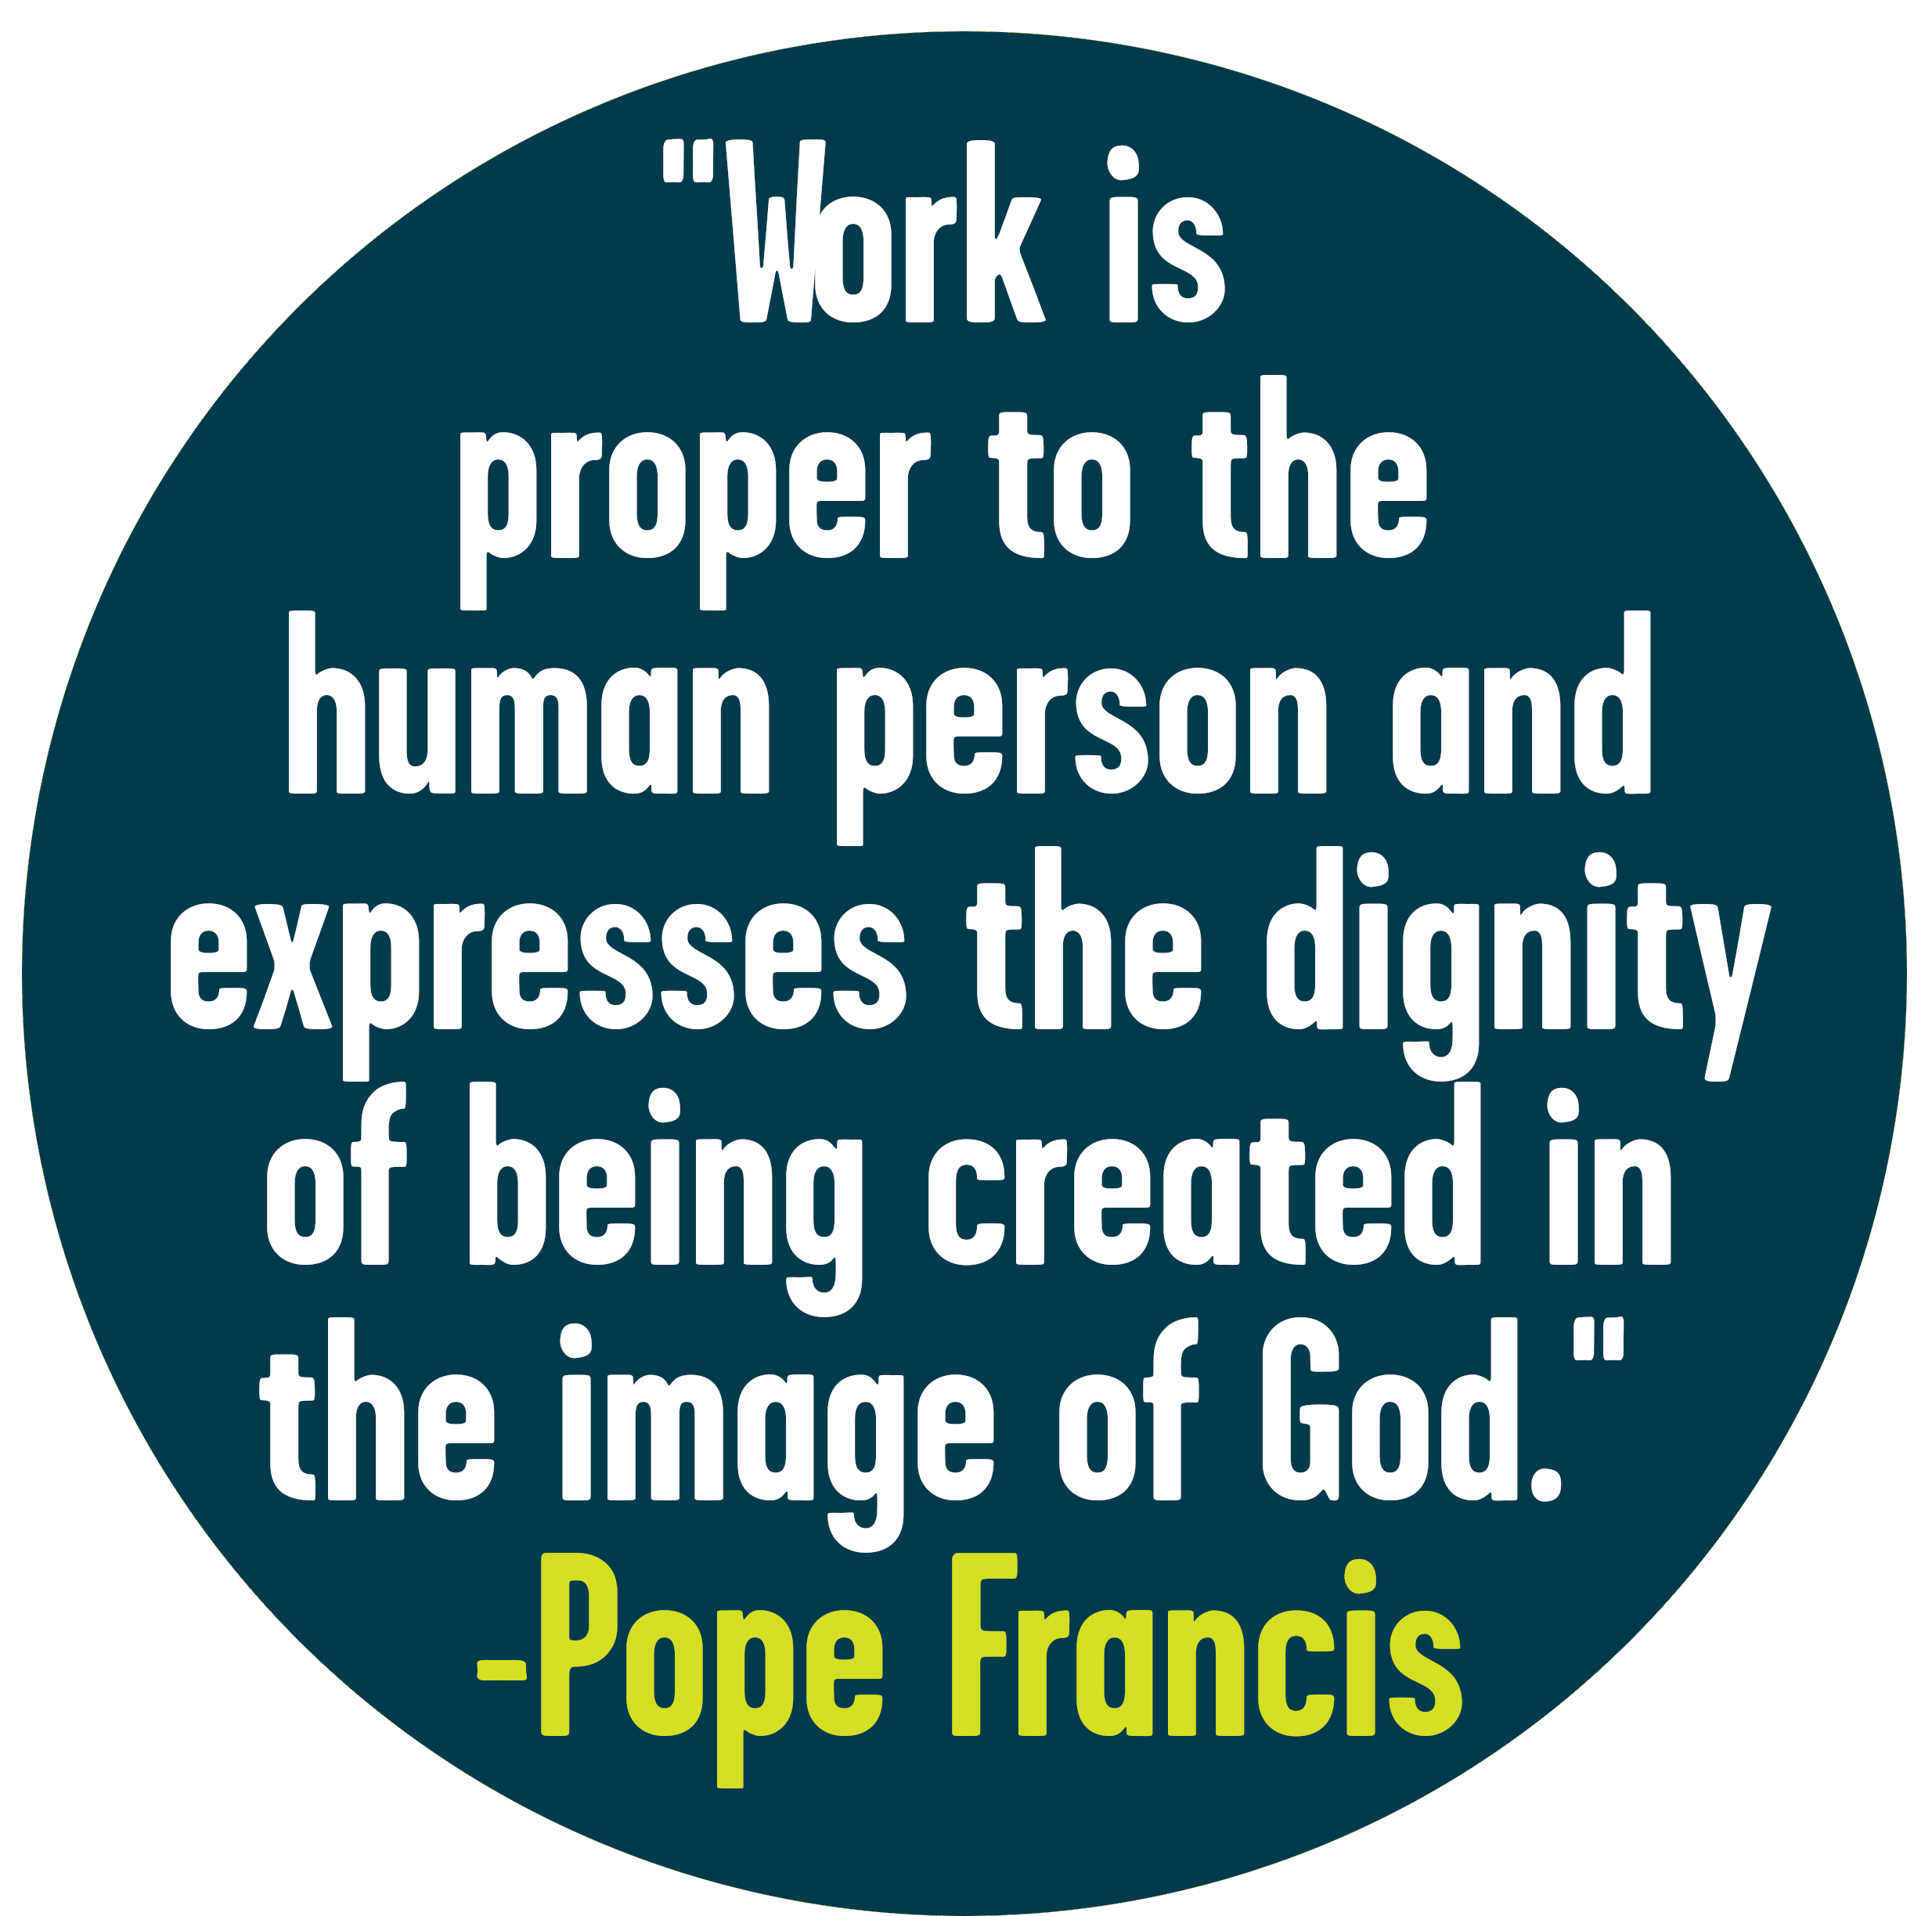 Pope francis workers quote.png